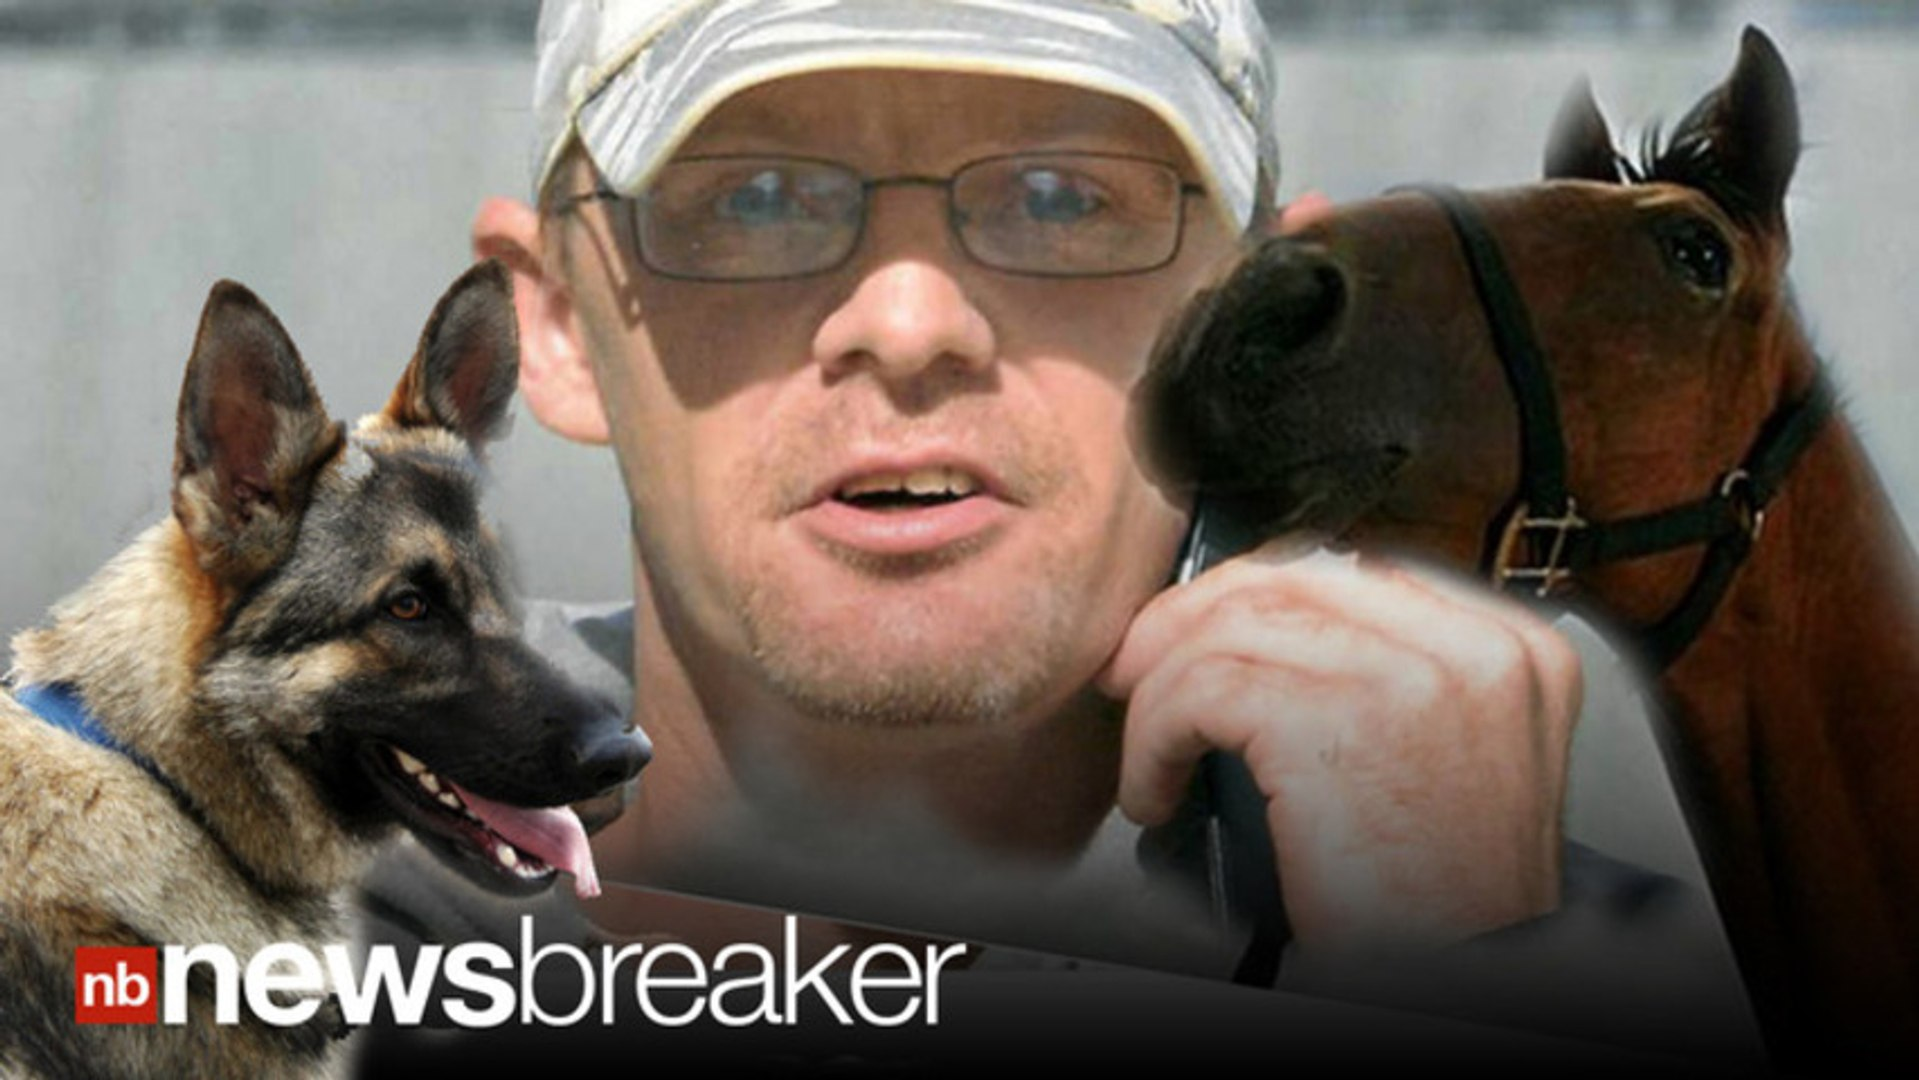 ANIMAL SEX: Man Admits to Sex with Two Dogs, Horse; Banned from Owning Pets